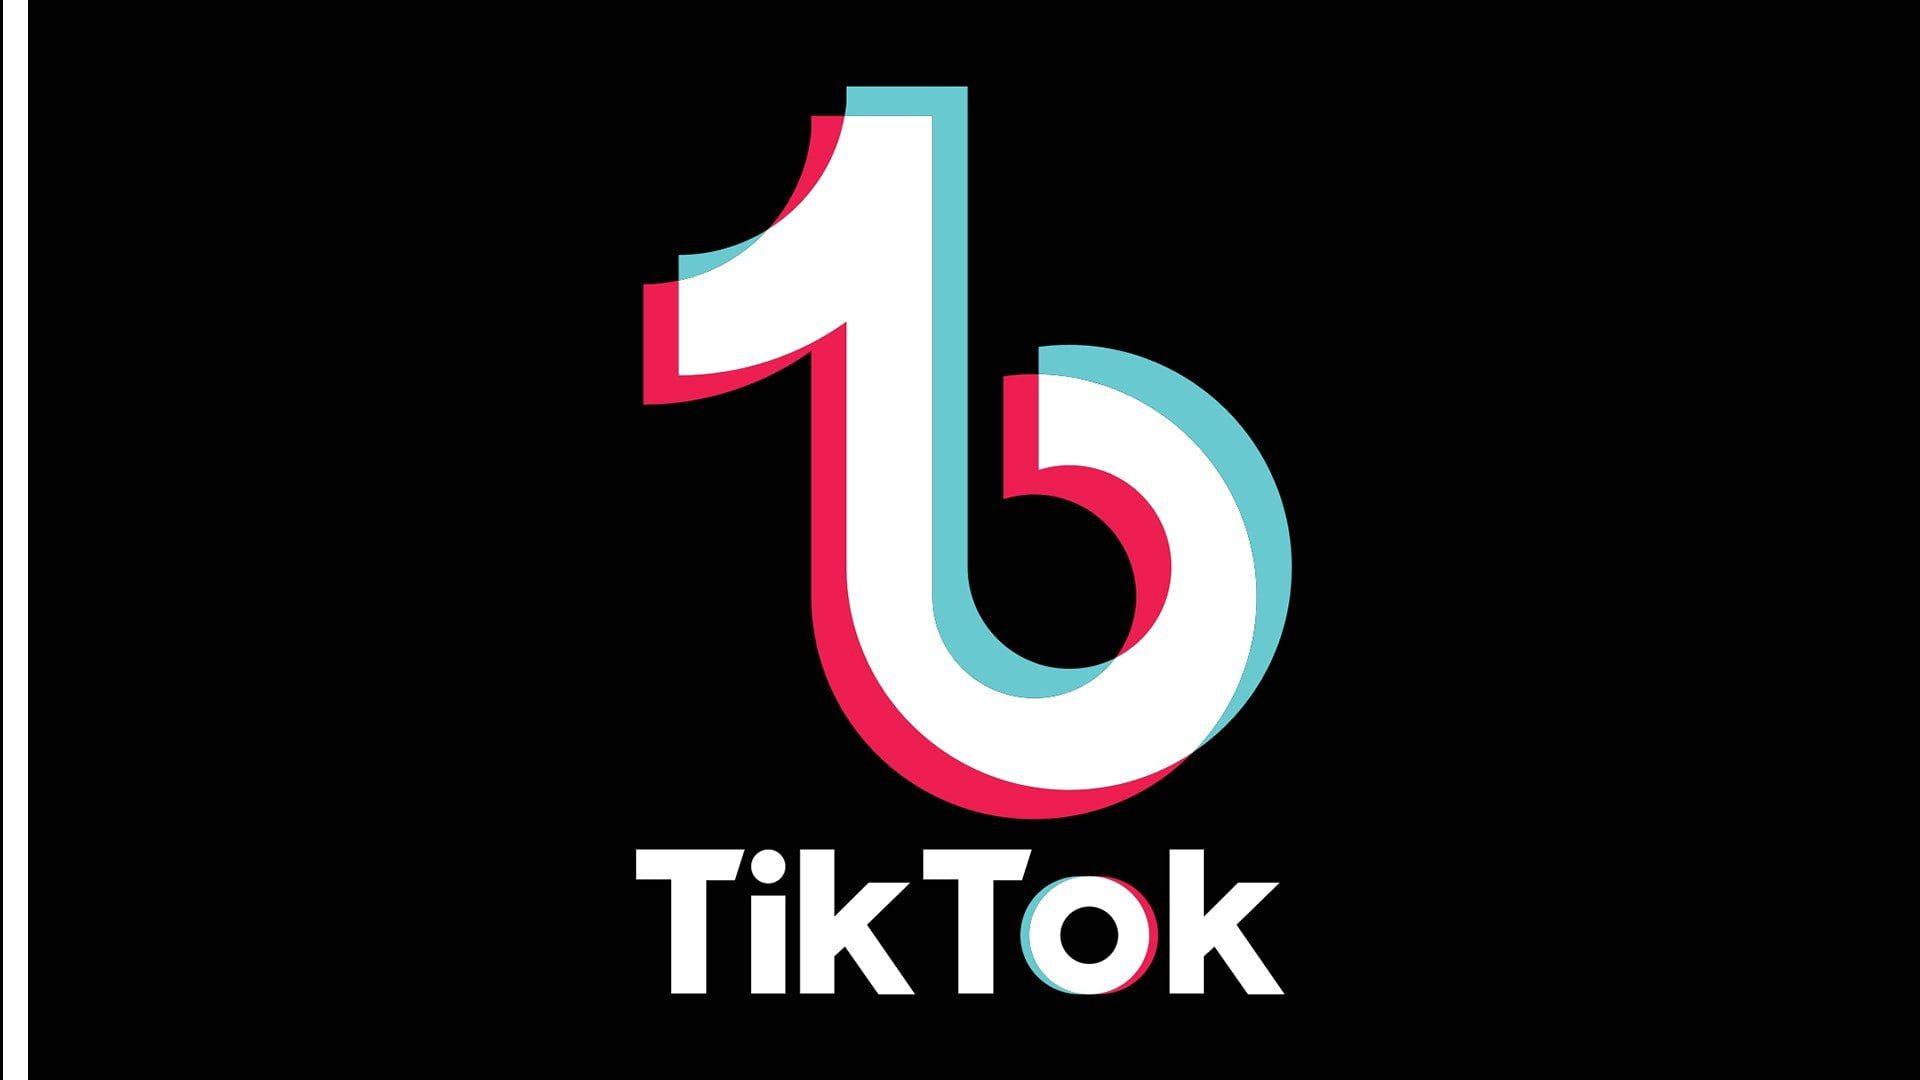 Best TikTok songs 2021 See all the viral songs and trends from TikTok 1